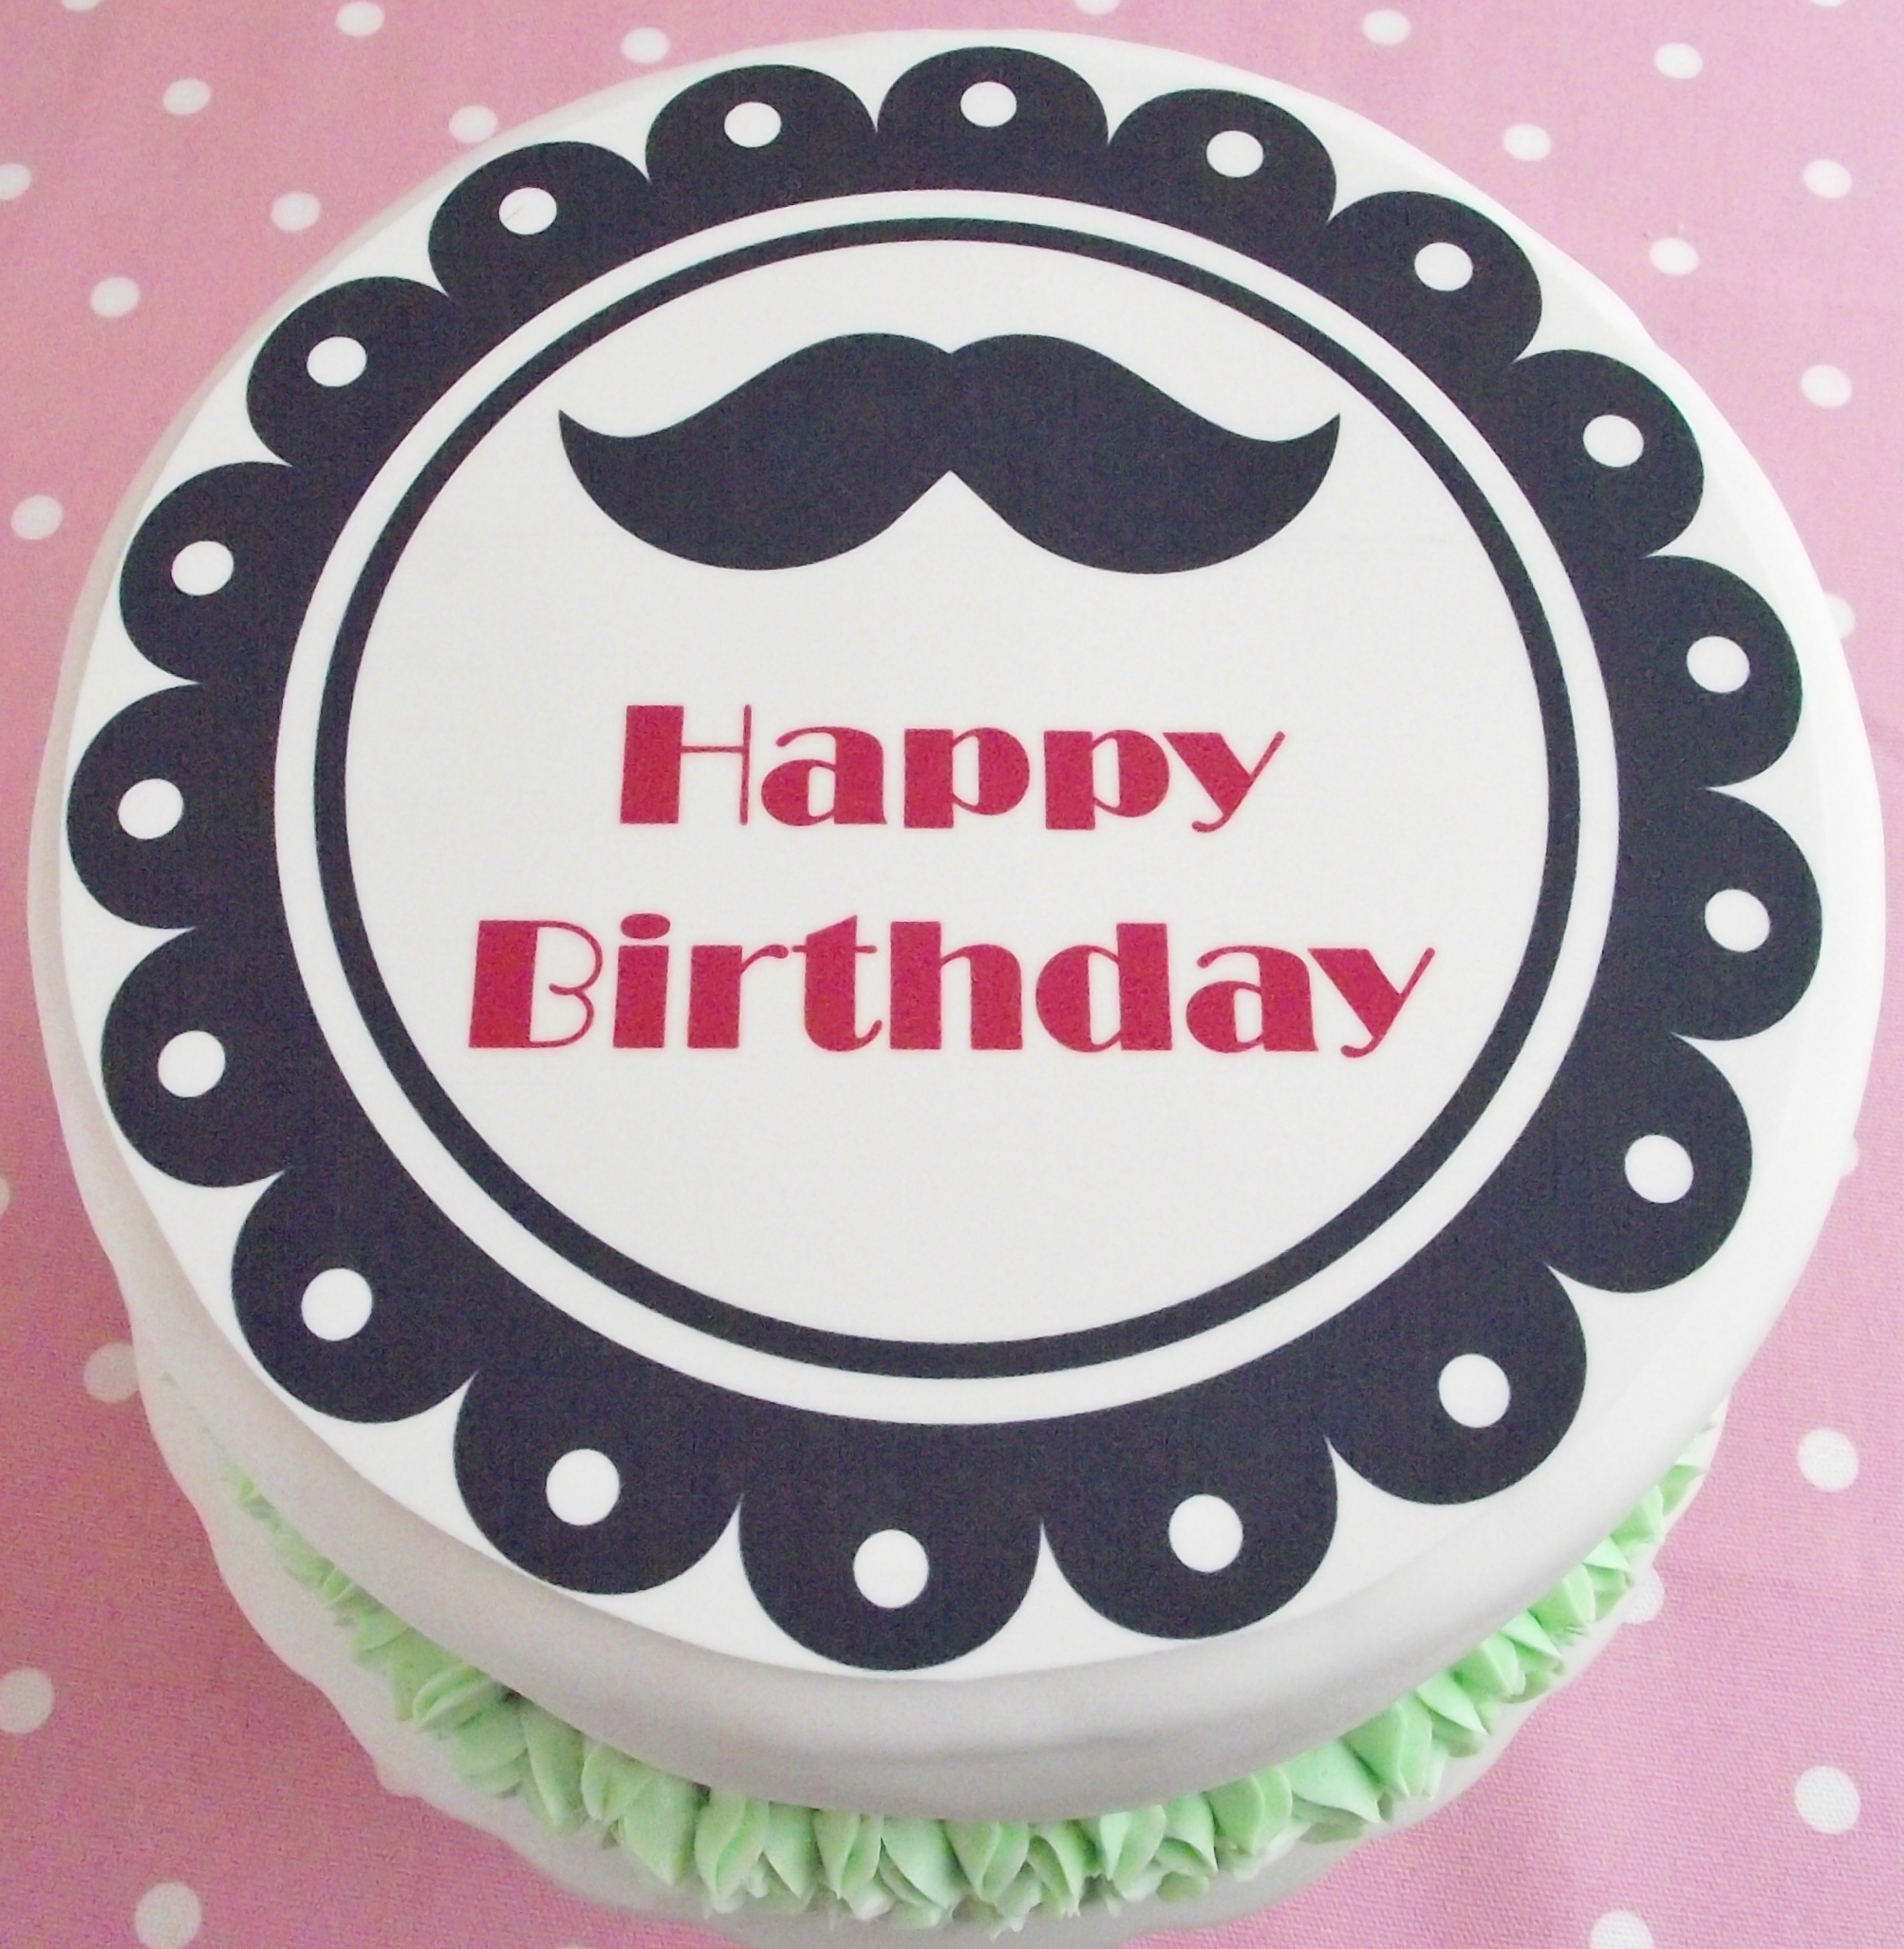 Cake Toppers Birthday Adult Birthdays Vintage Scallop Retro Moustache Happy Topper 75 Round